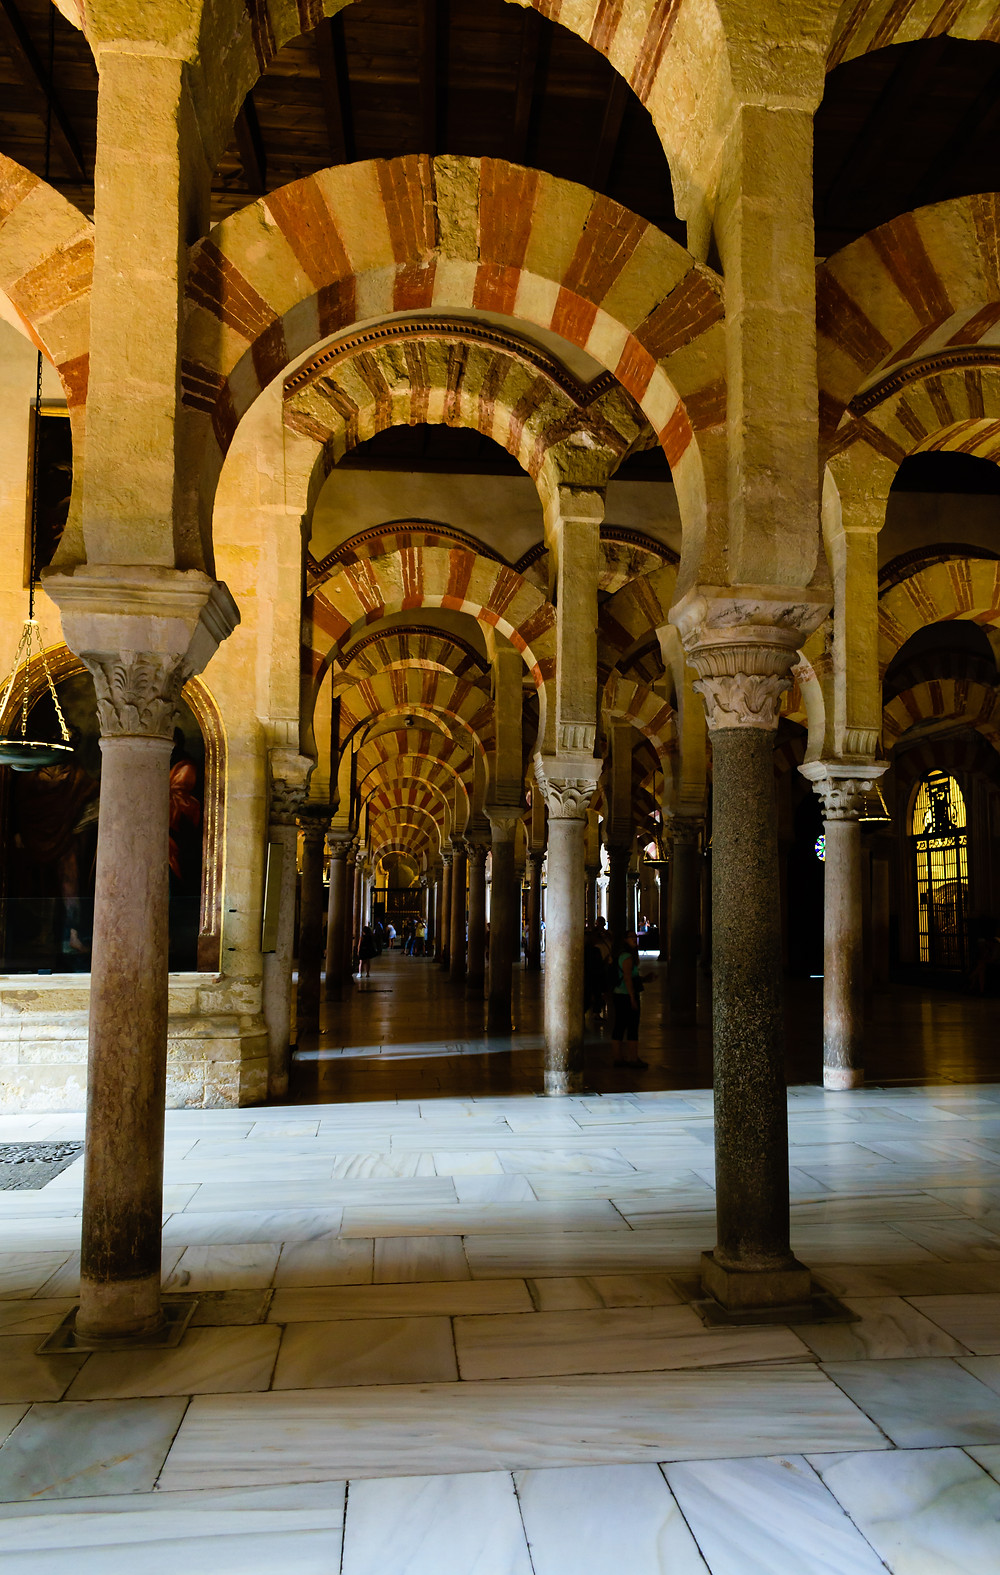 Double arch design in Mosque-Cathedral of Cordoba